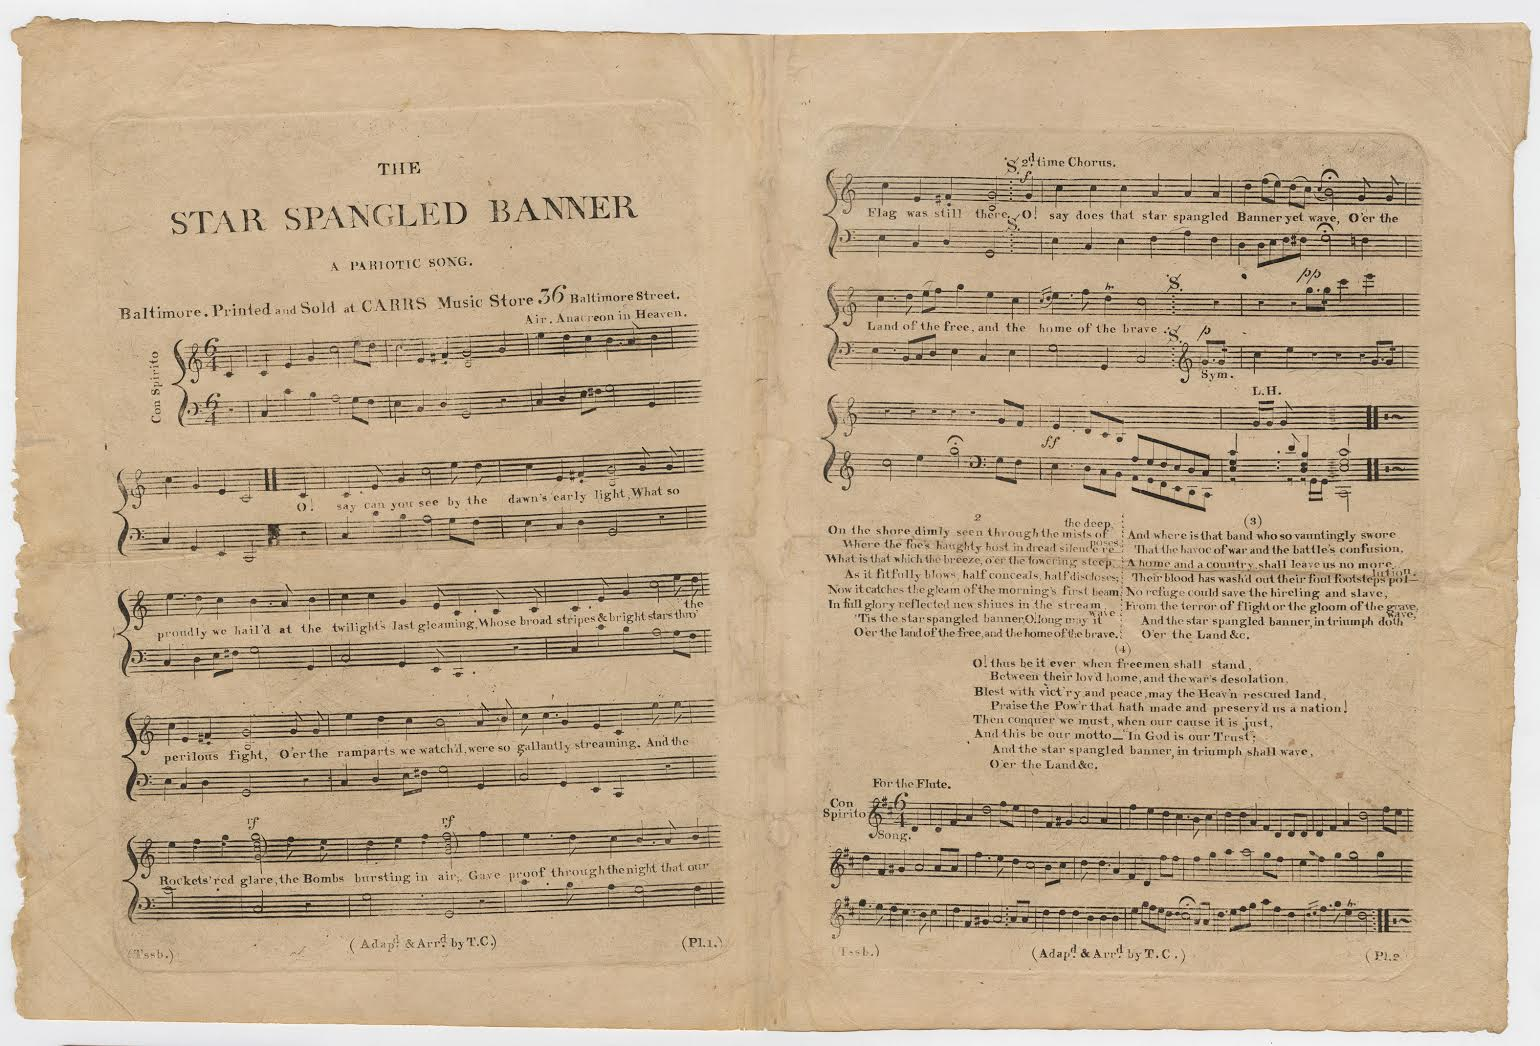 """1814 first sheet music edition of """"The Star-Spangled Banner,"""" arranged by Thomas Carr; courtesy the William L. Clements Library, University of Michigan"""